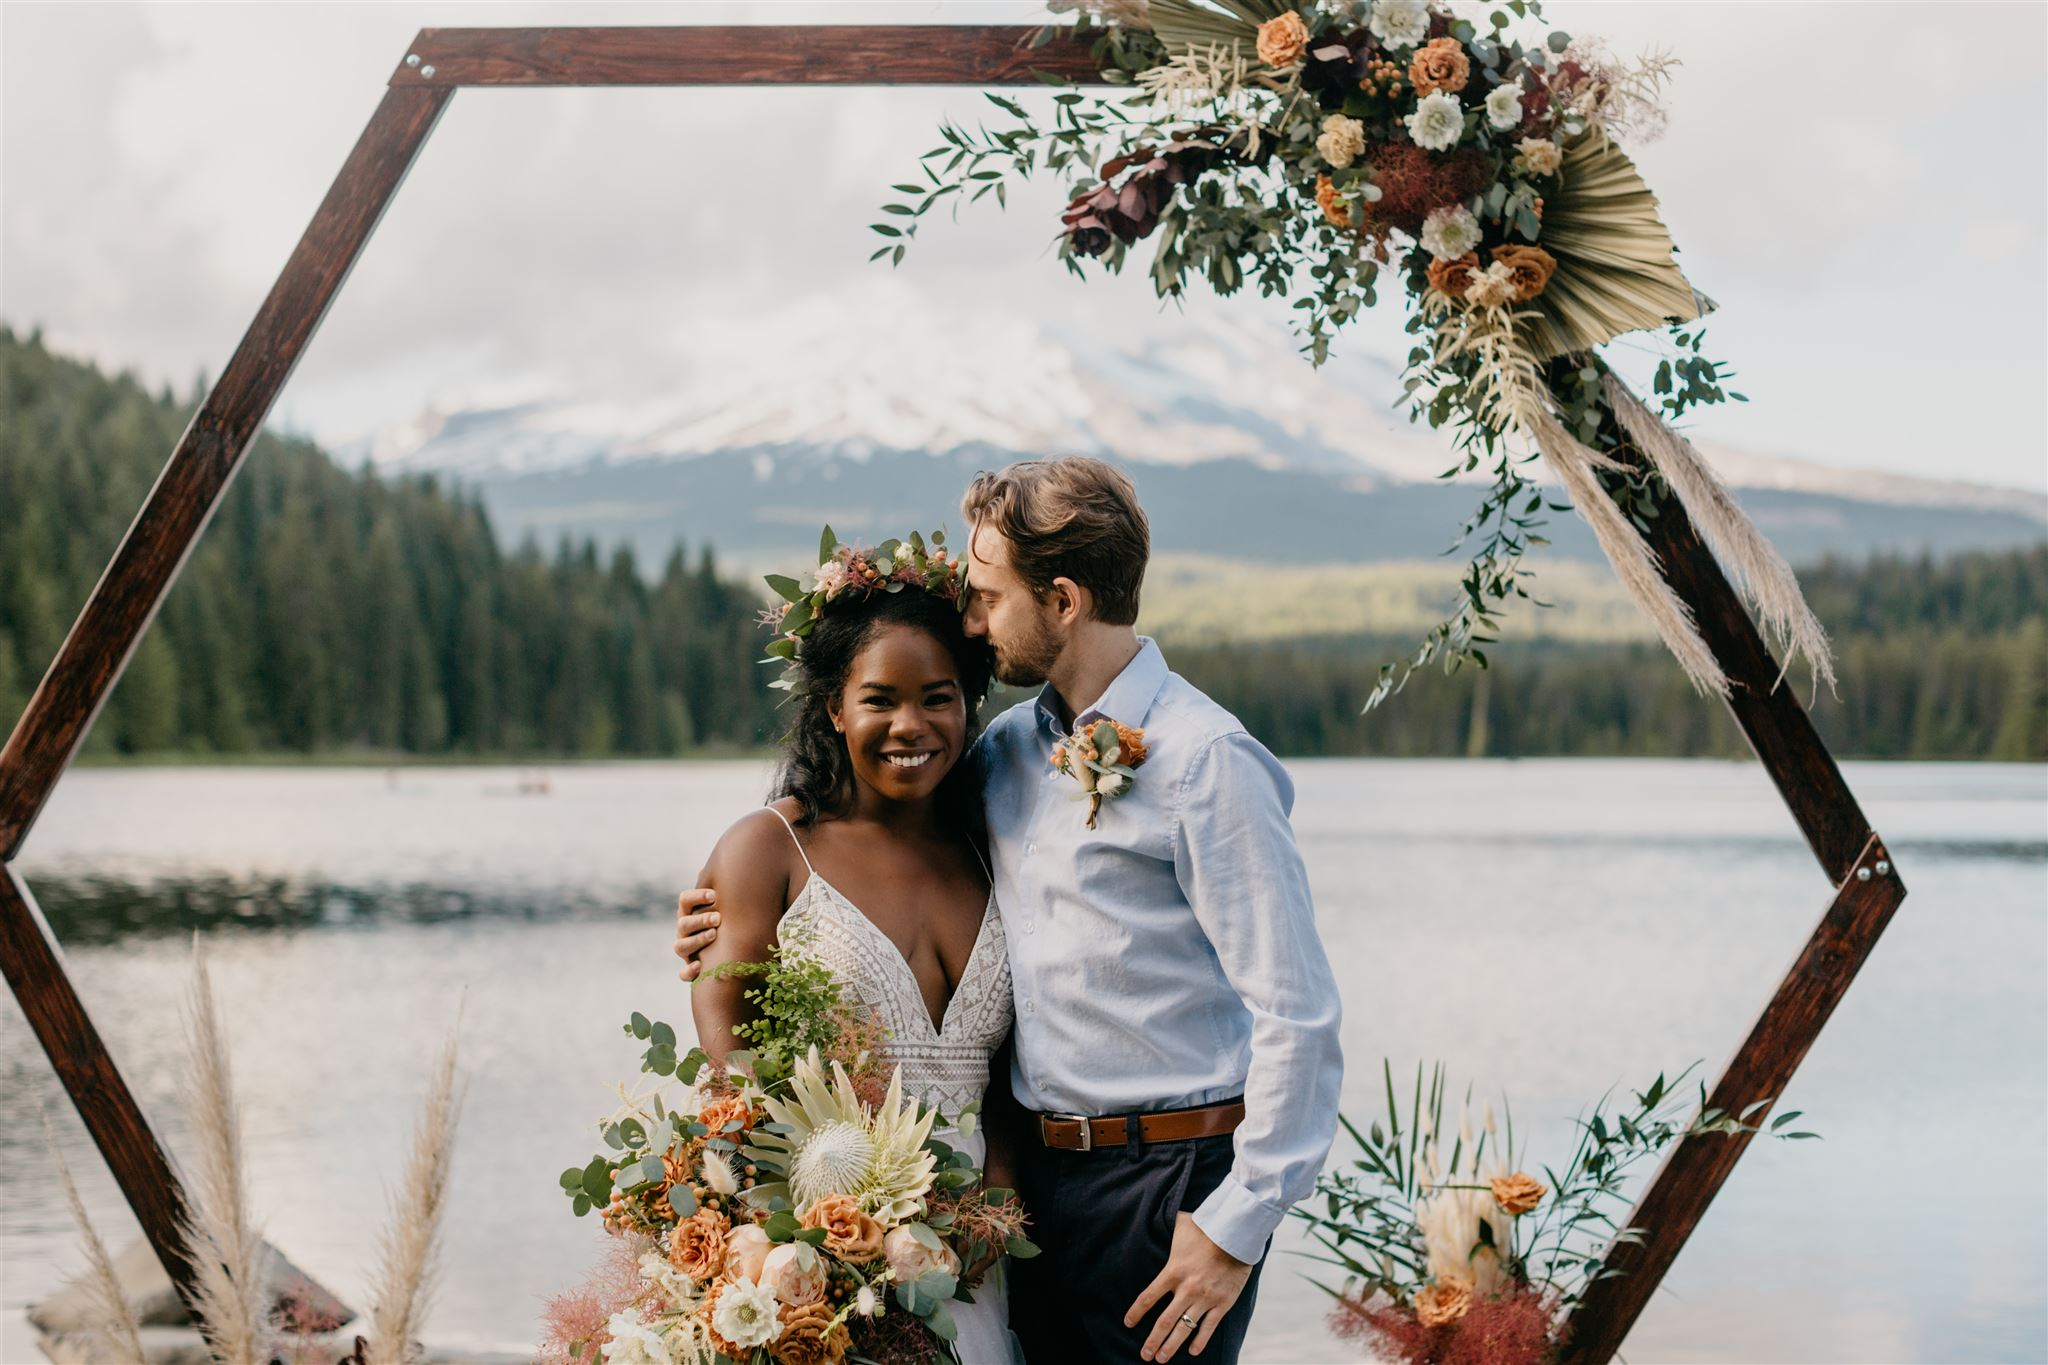 Portland wedding florist Flowers by Alana has been published SEVEN times in 2020!